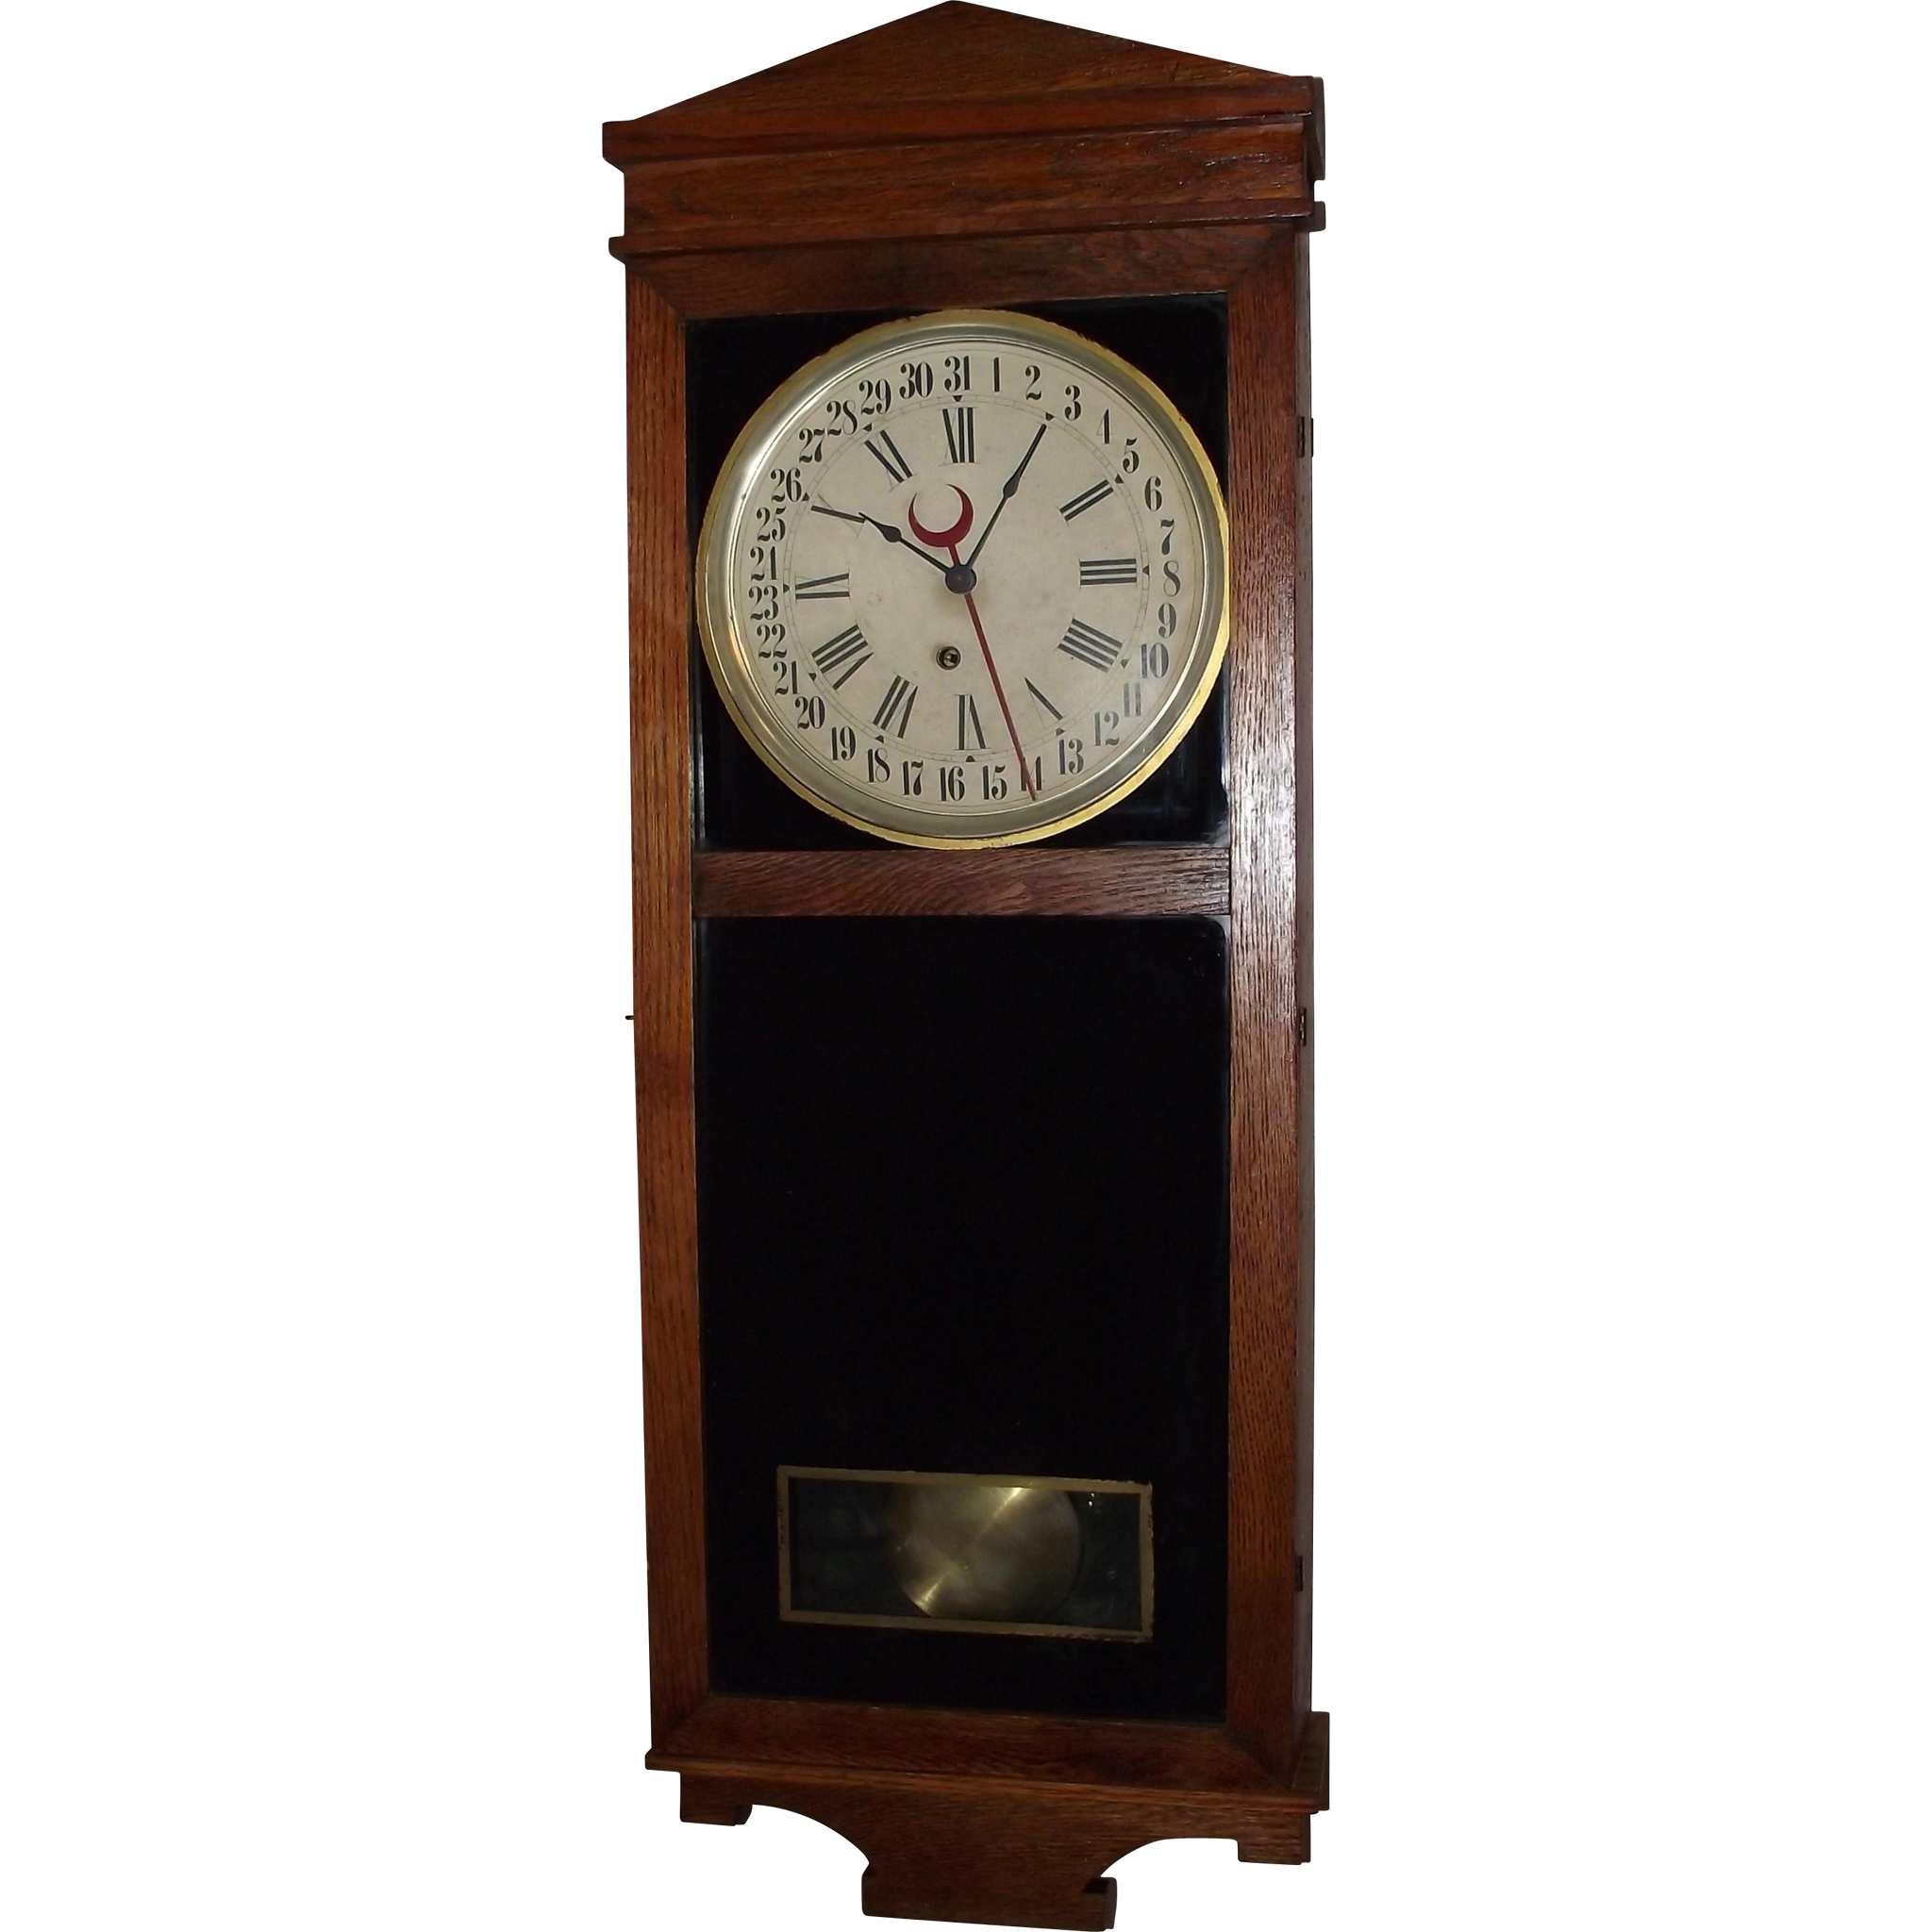 """Your Business Name"" could be on this Advertising Store Regulator Clock ""Landau"" Model made by ""E. Ingraham Clock Co."" Circa 1916 !!!"